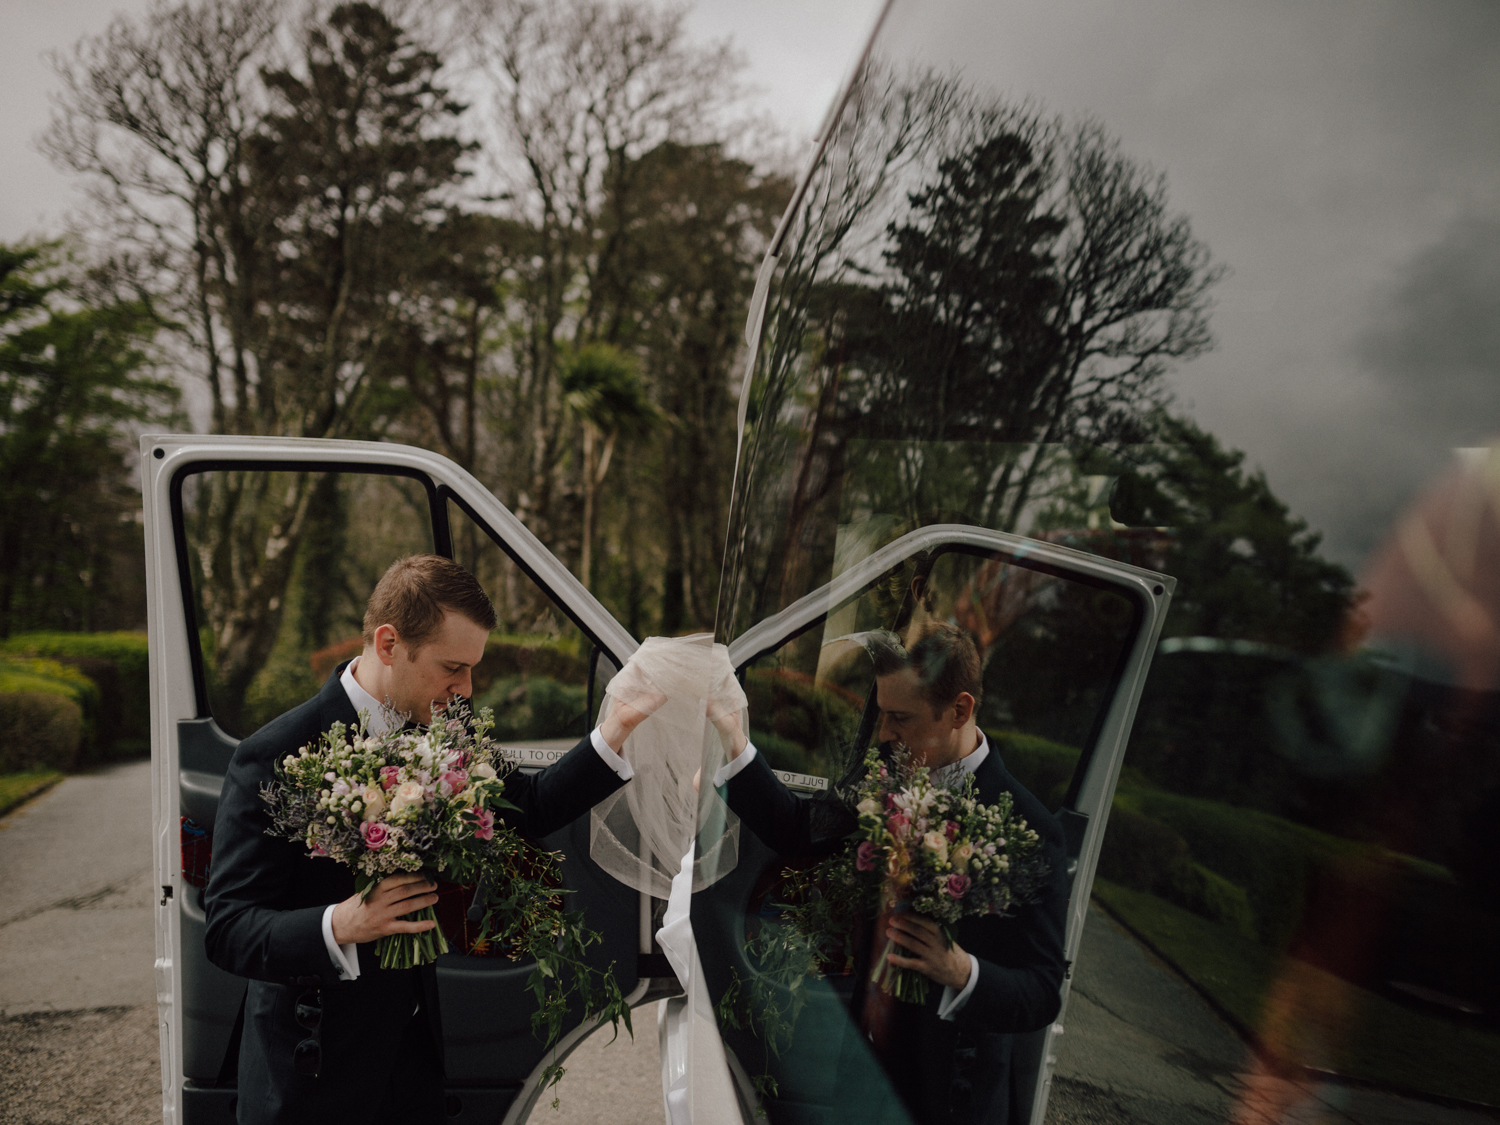 capyture-wedding-photographer-destination-elopement-isle-skye-scotland-142